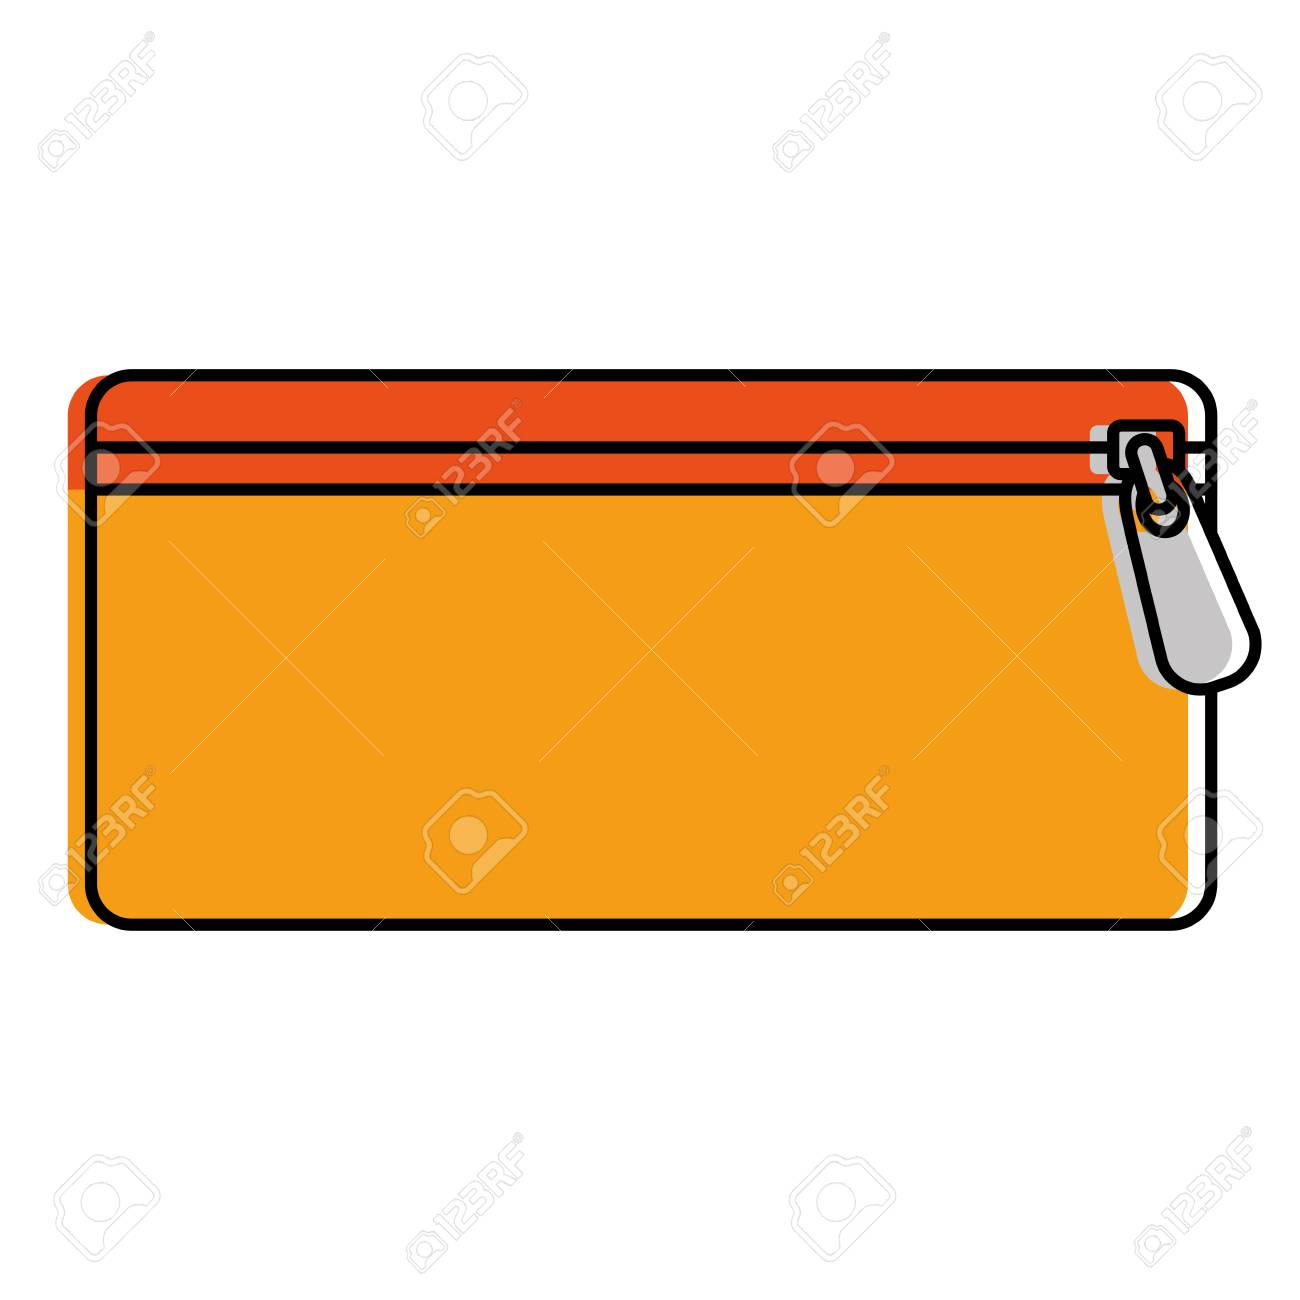 Pencil Case With Pen And Colors Vector Illustration Design Royalty Free  Cliparts, Vectors, And Stock Illustration. Image 85367253.